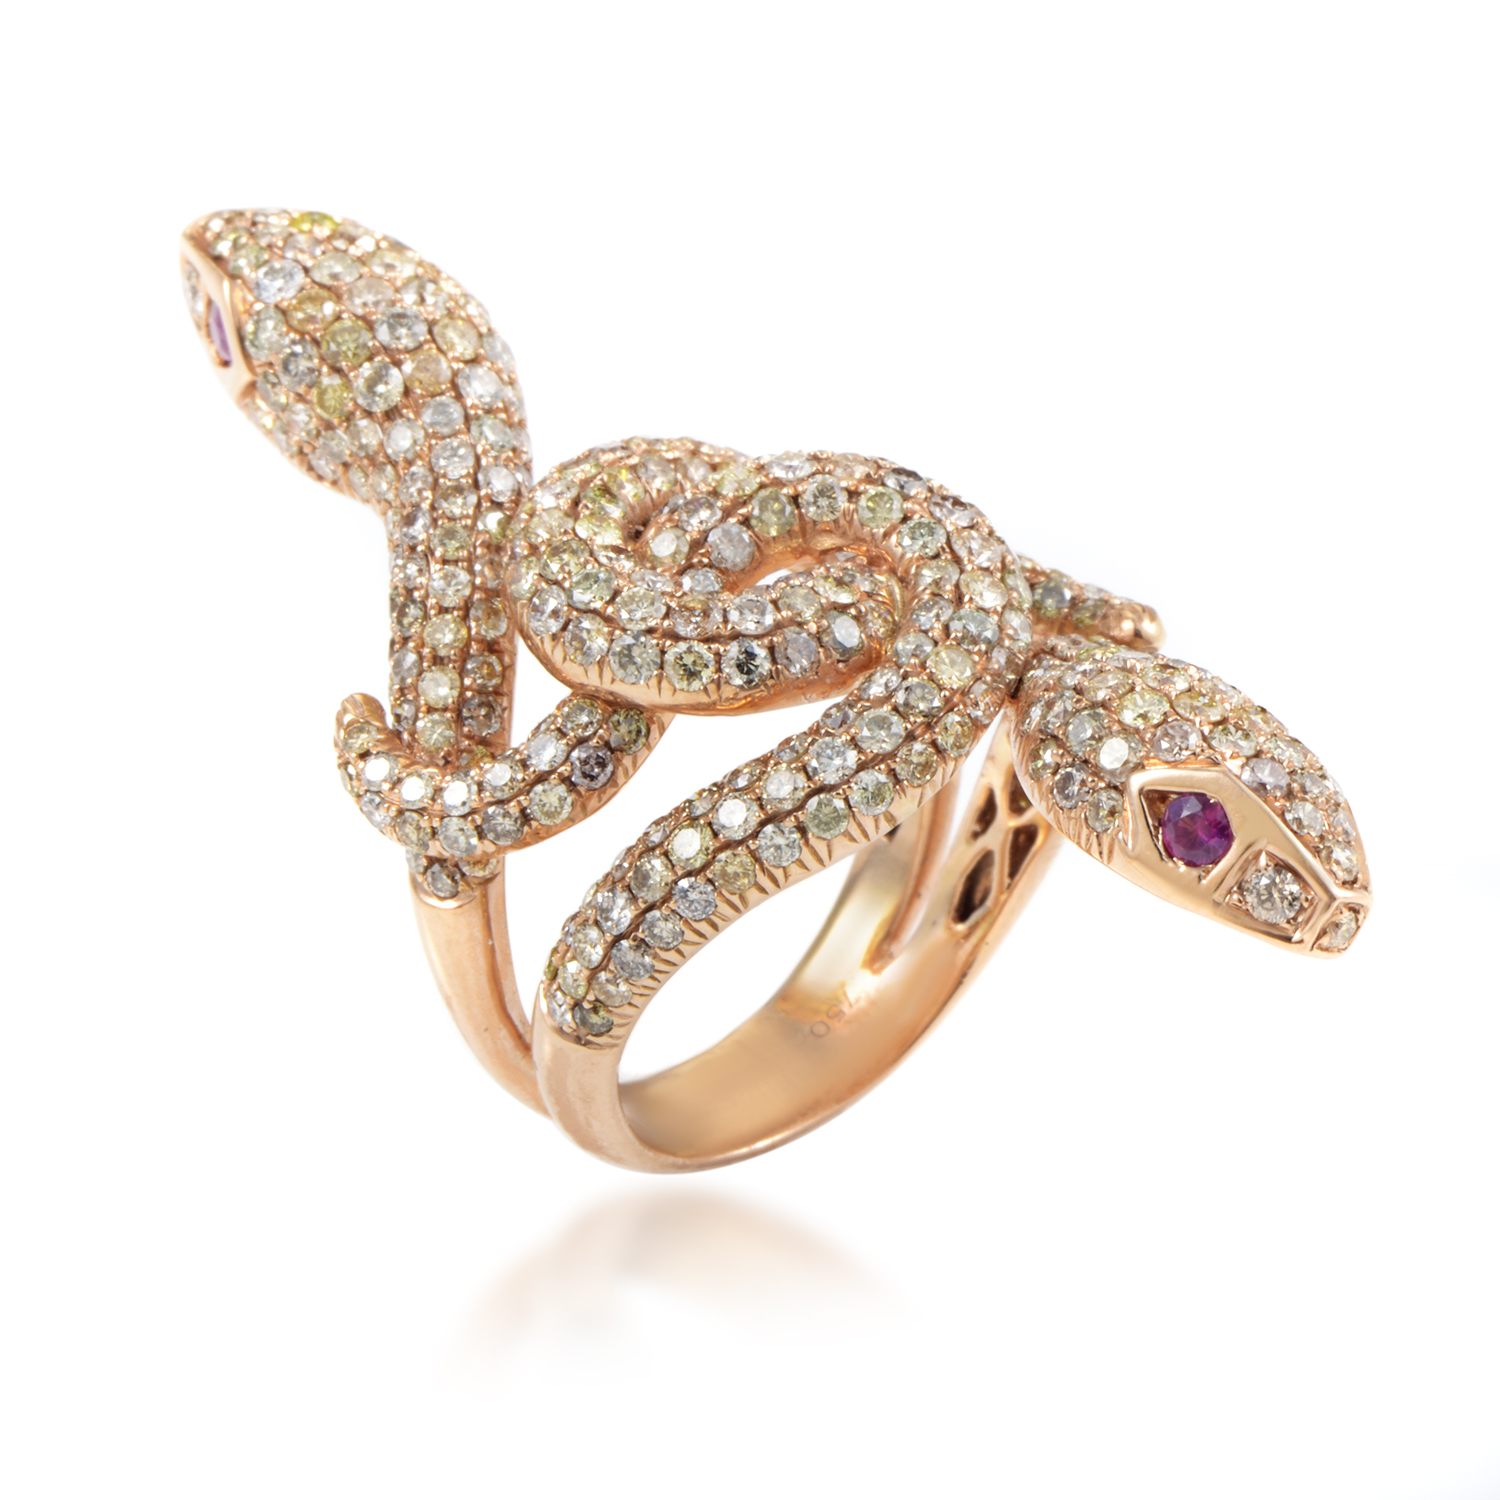 Women's 18K Rose Gold Diamond & Ruby Double Headed Snake Ring FDR7374